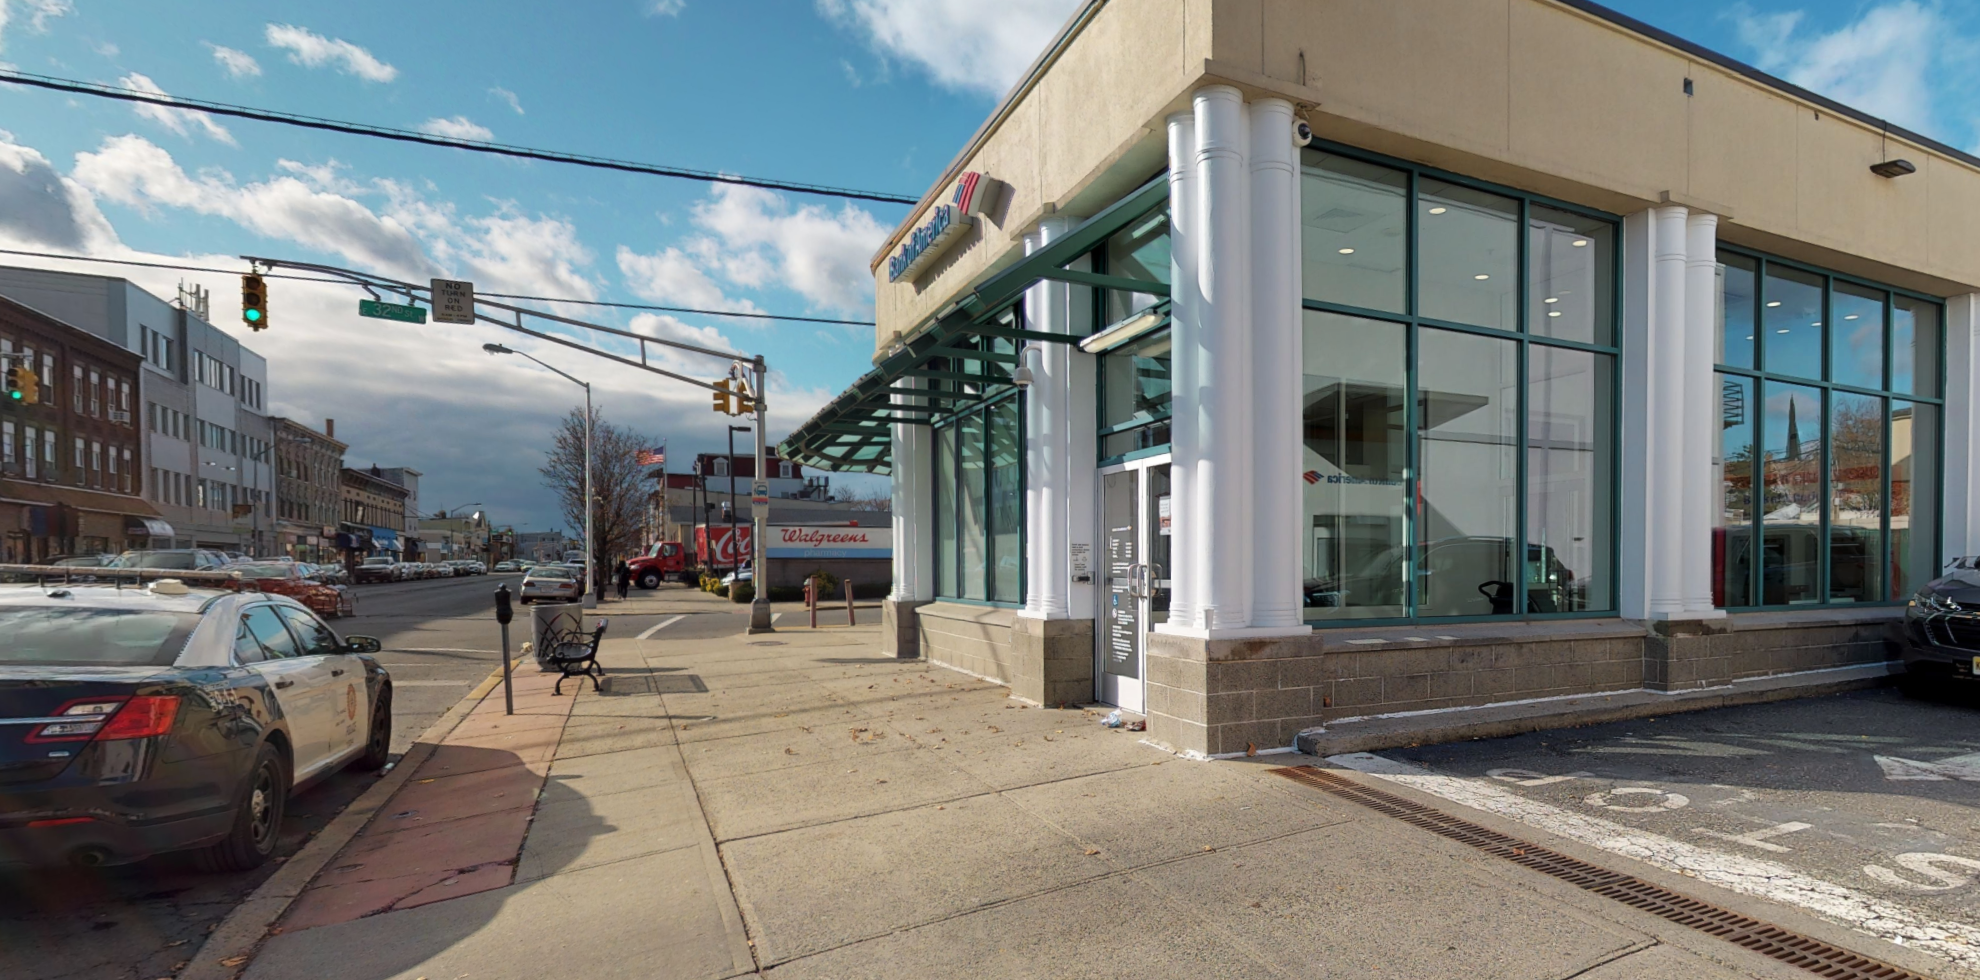 Bank of America financial center with drive-thru ATM | 701 Broadway, Bayonne, NJ 07002